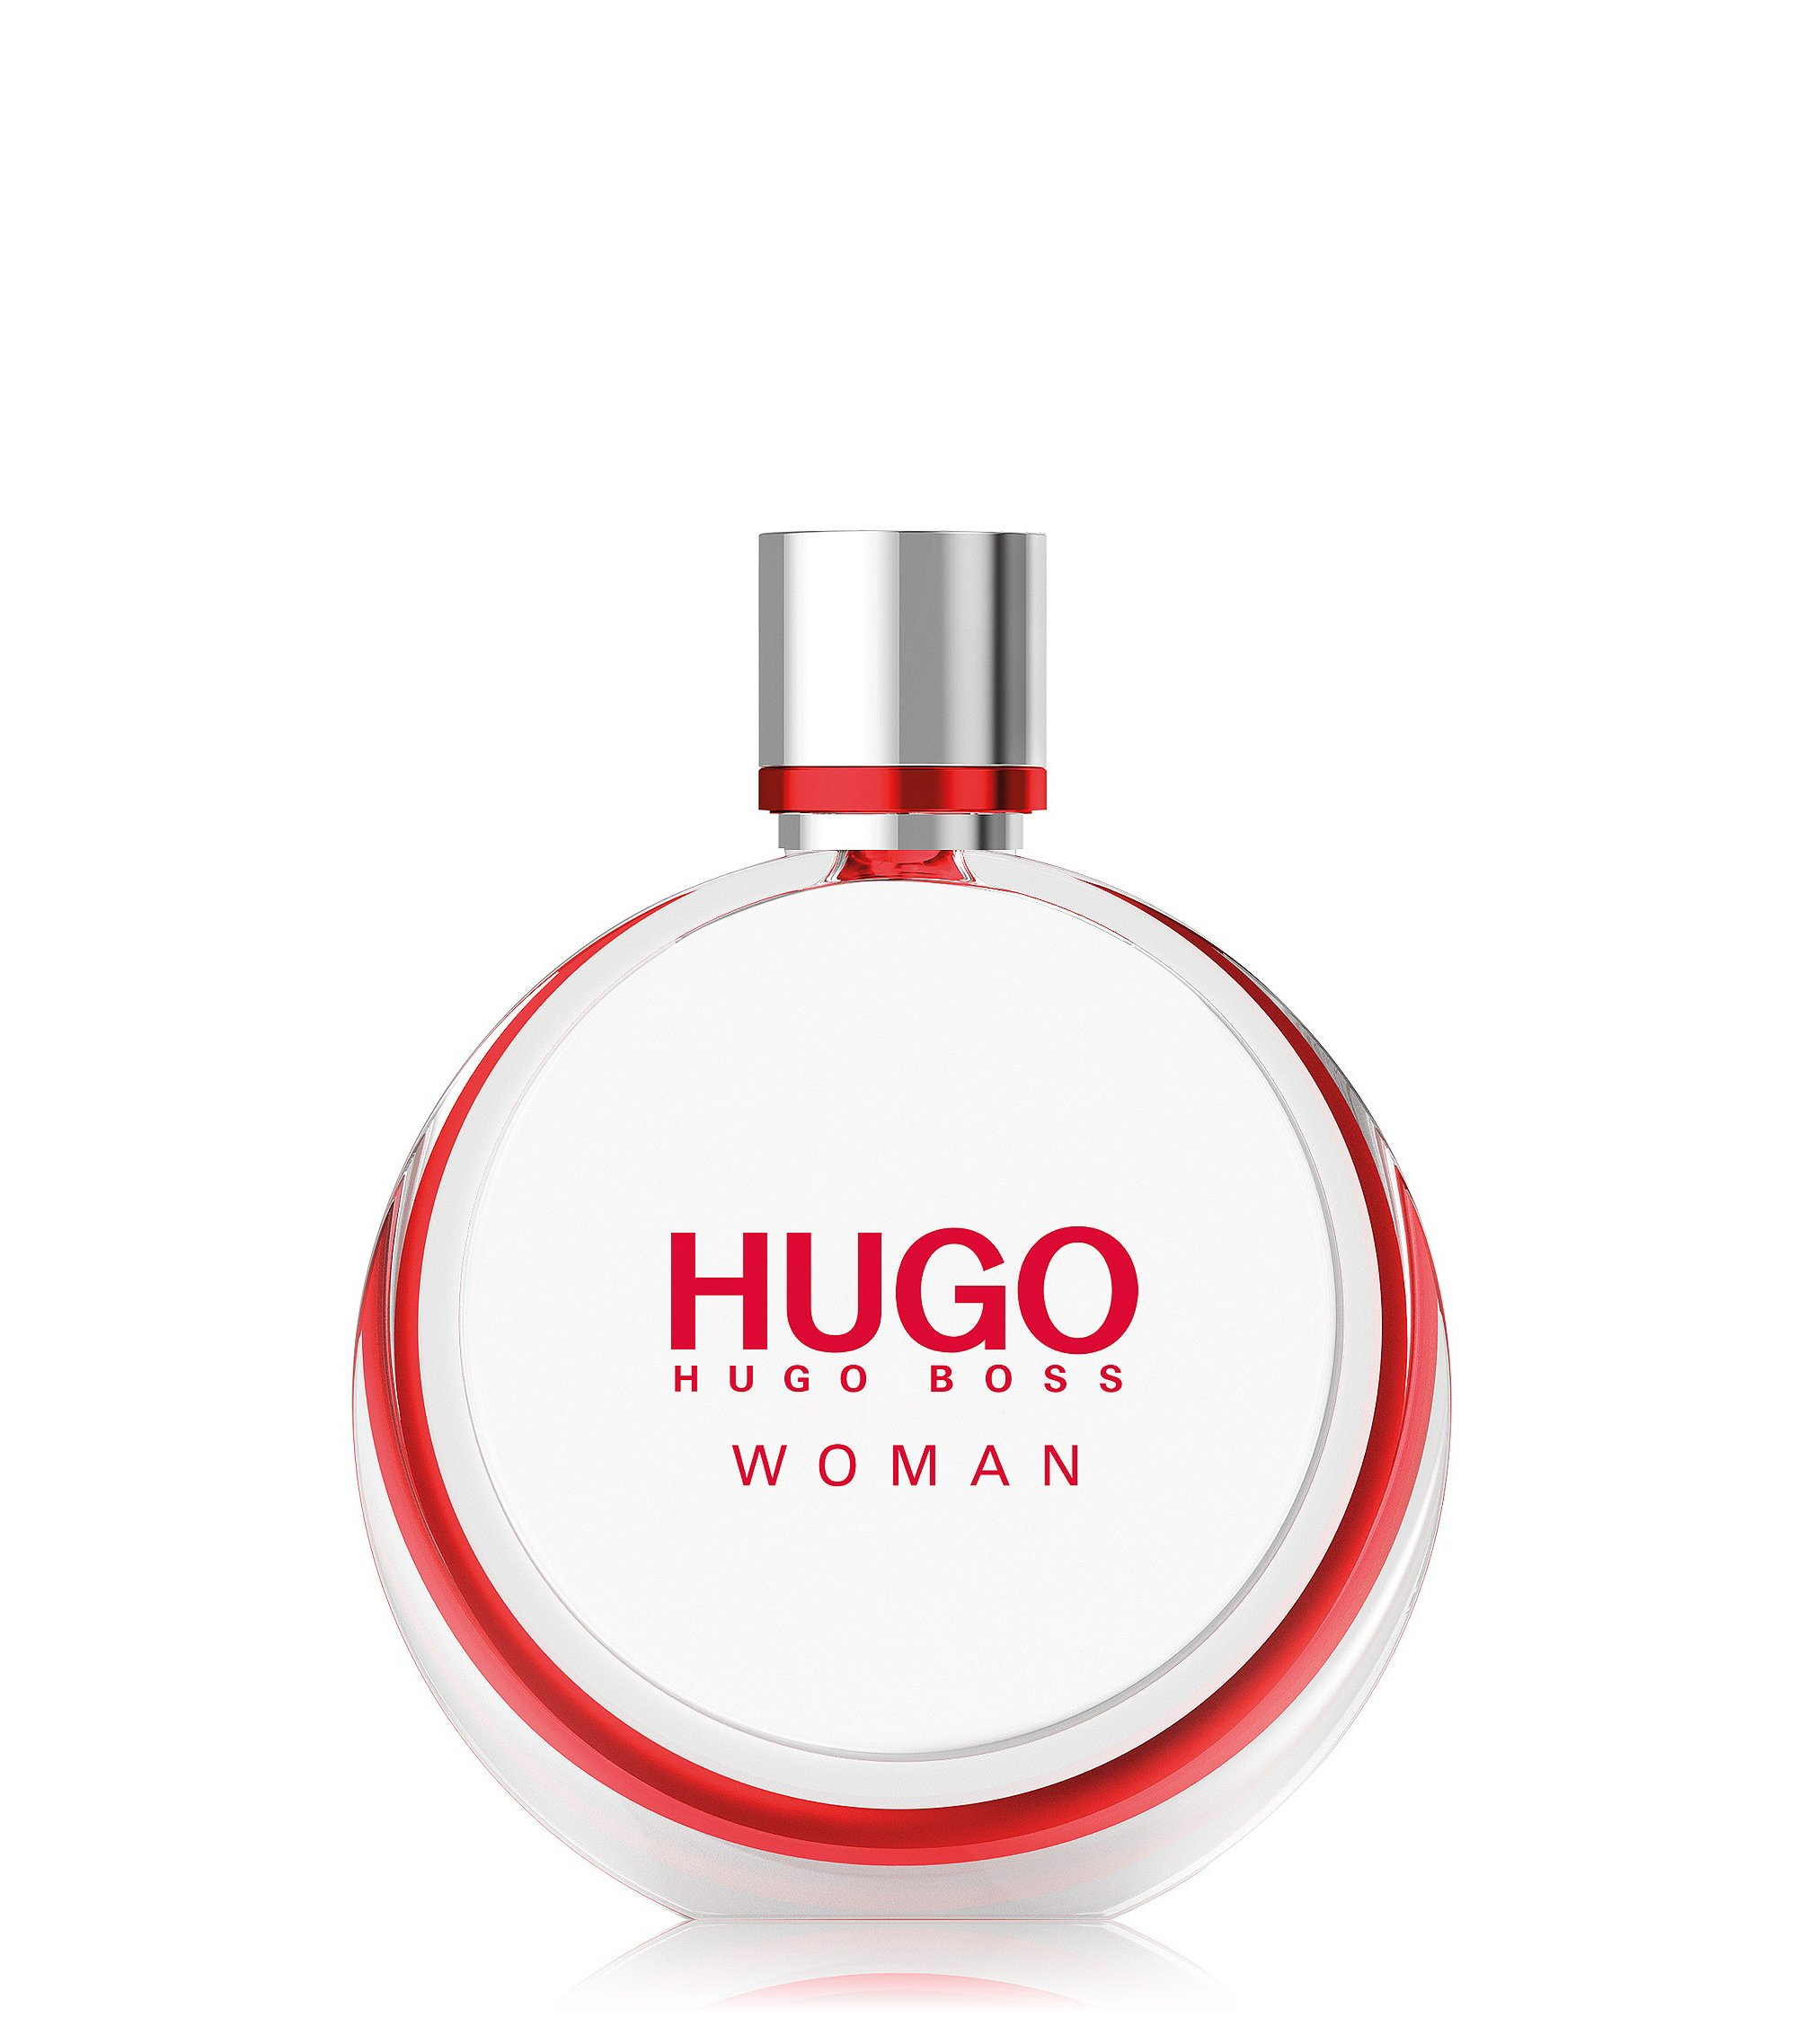 HUGO Woman eau de parfum 75ml, Assorted-Pre-Pack